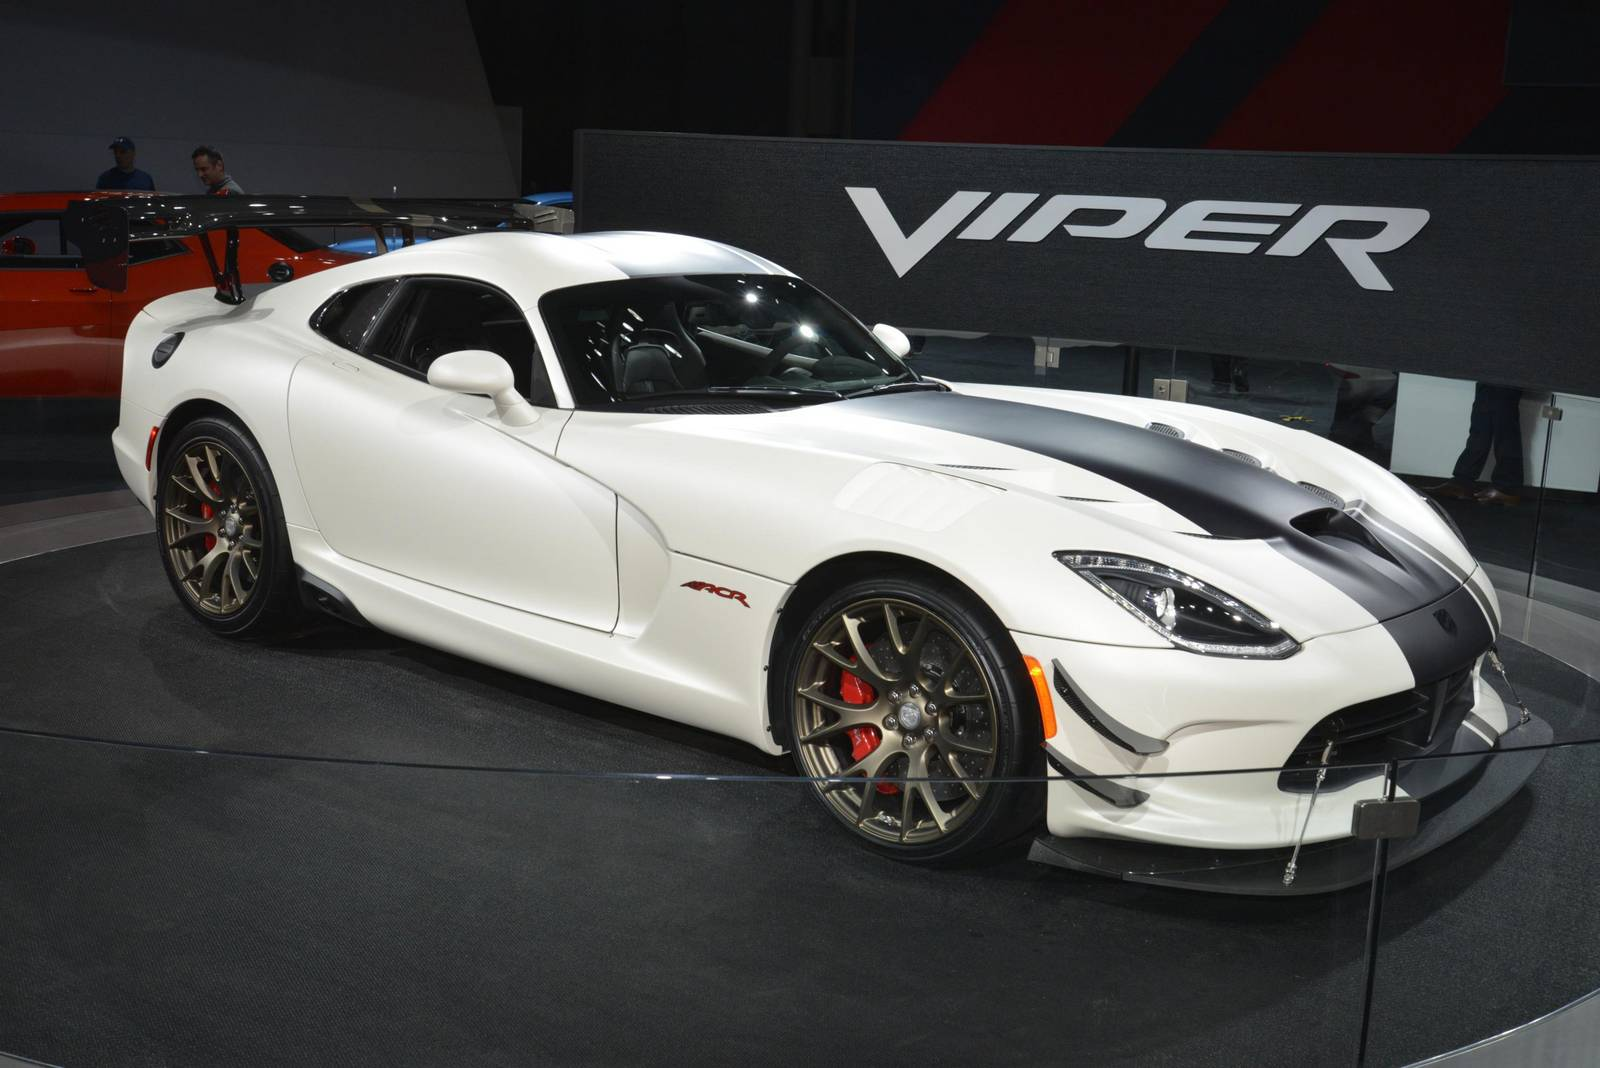 Dodge Viper to return in 2020 with new 550bhp naturally aspirated V8